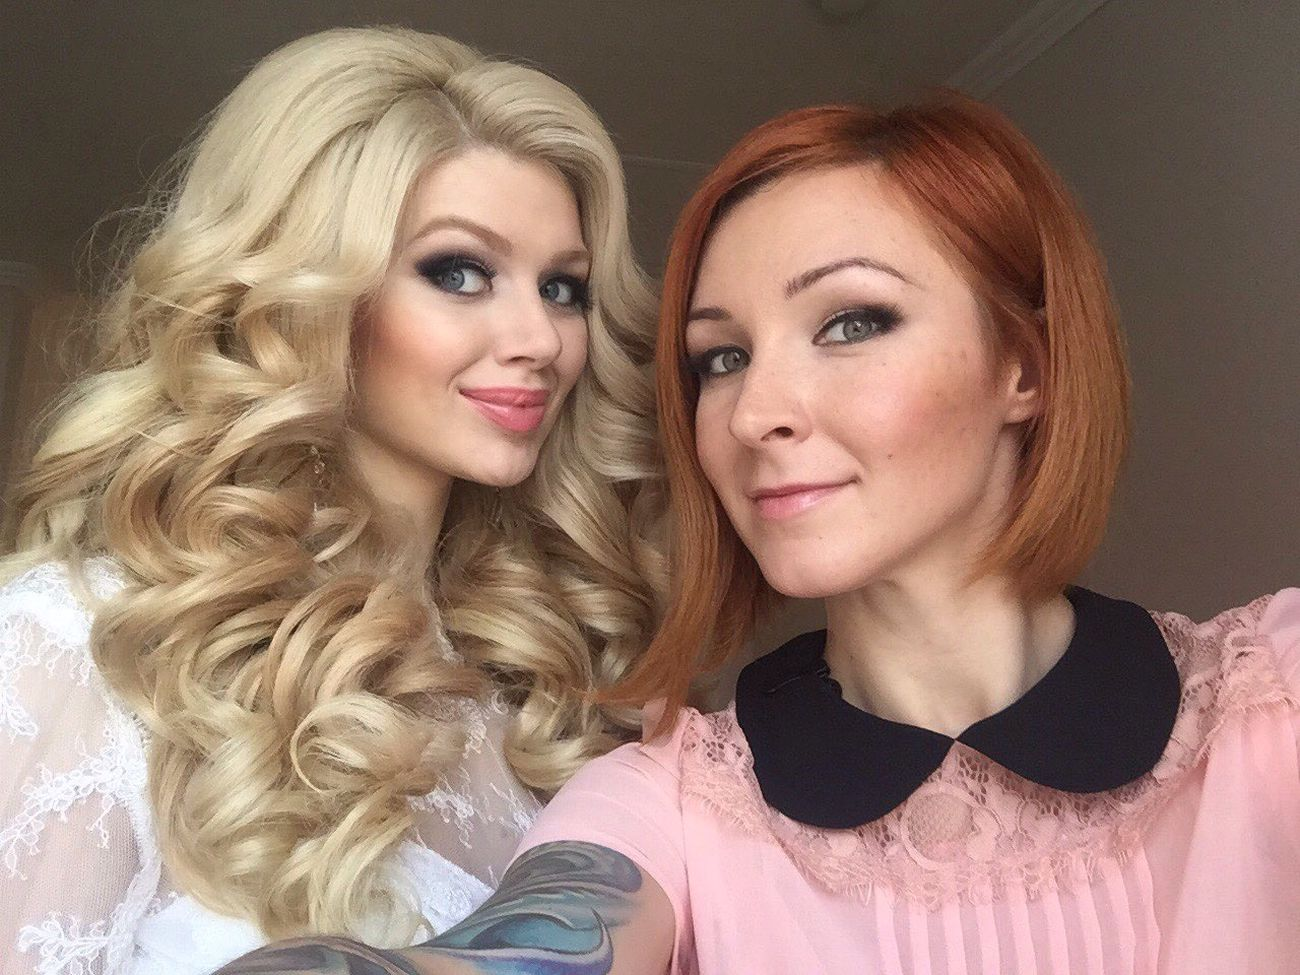 Blondie Novia2015 Weddingdetails Blondehair Hairstylist Hairdresser Happy Wedding Long Hair Weddinghair Girl